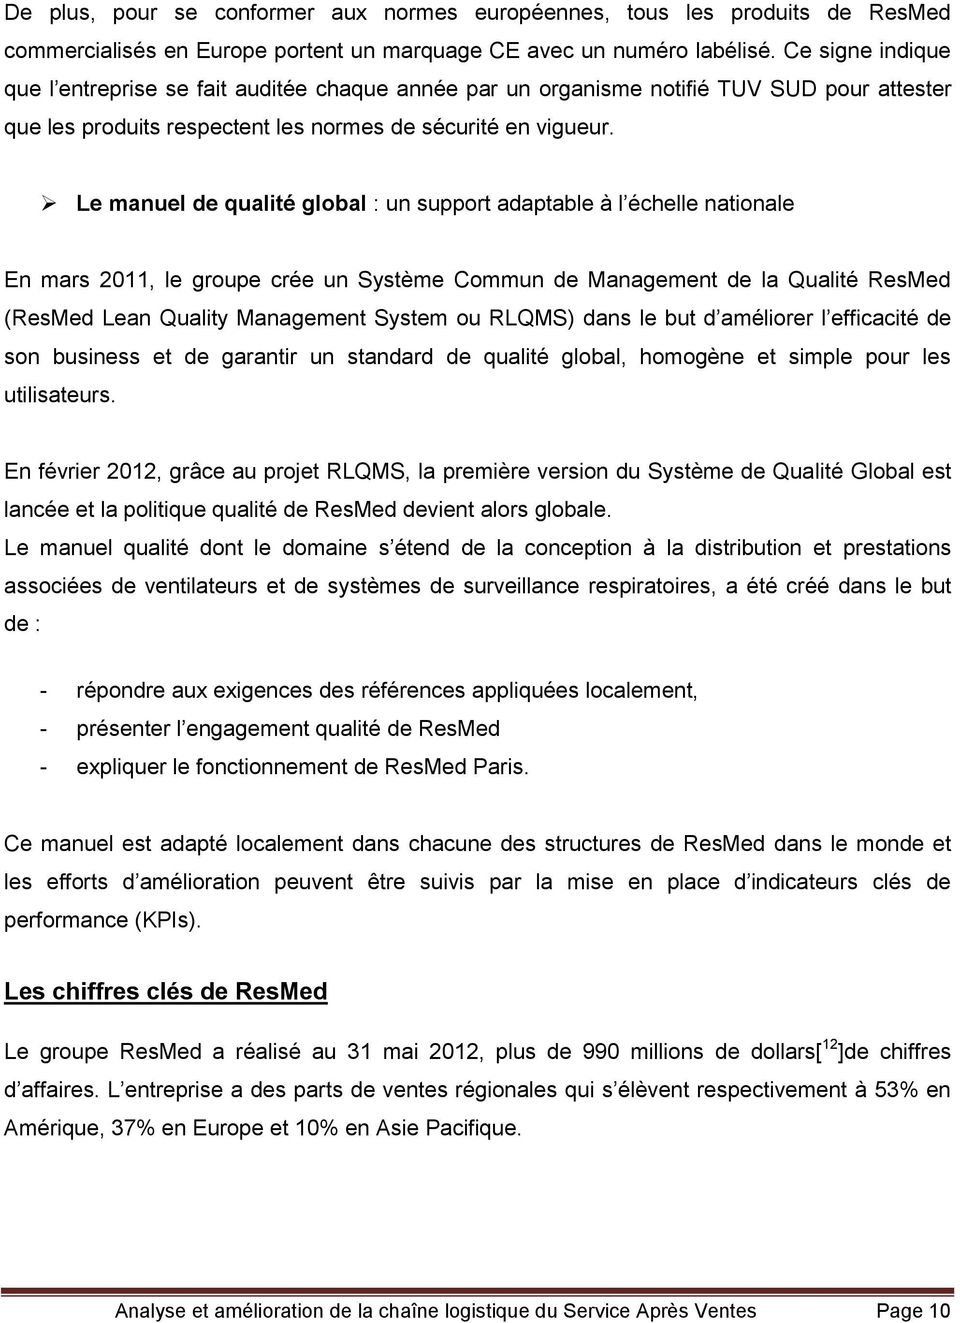 Le manuel de qualité global : un support adaptable à l échelle nationale En mars 2011, le groupe crée un Système Commun de Management de la Qualité ResMed (ResMed Lean Quality Management System ou